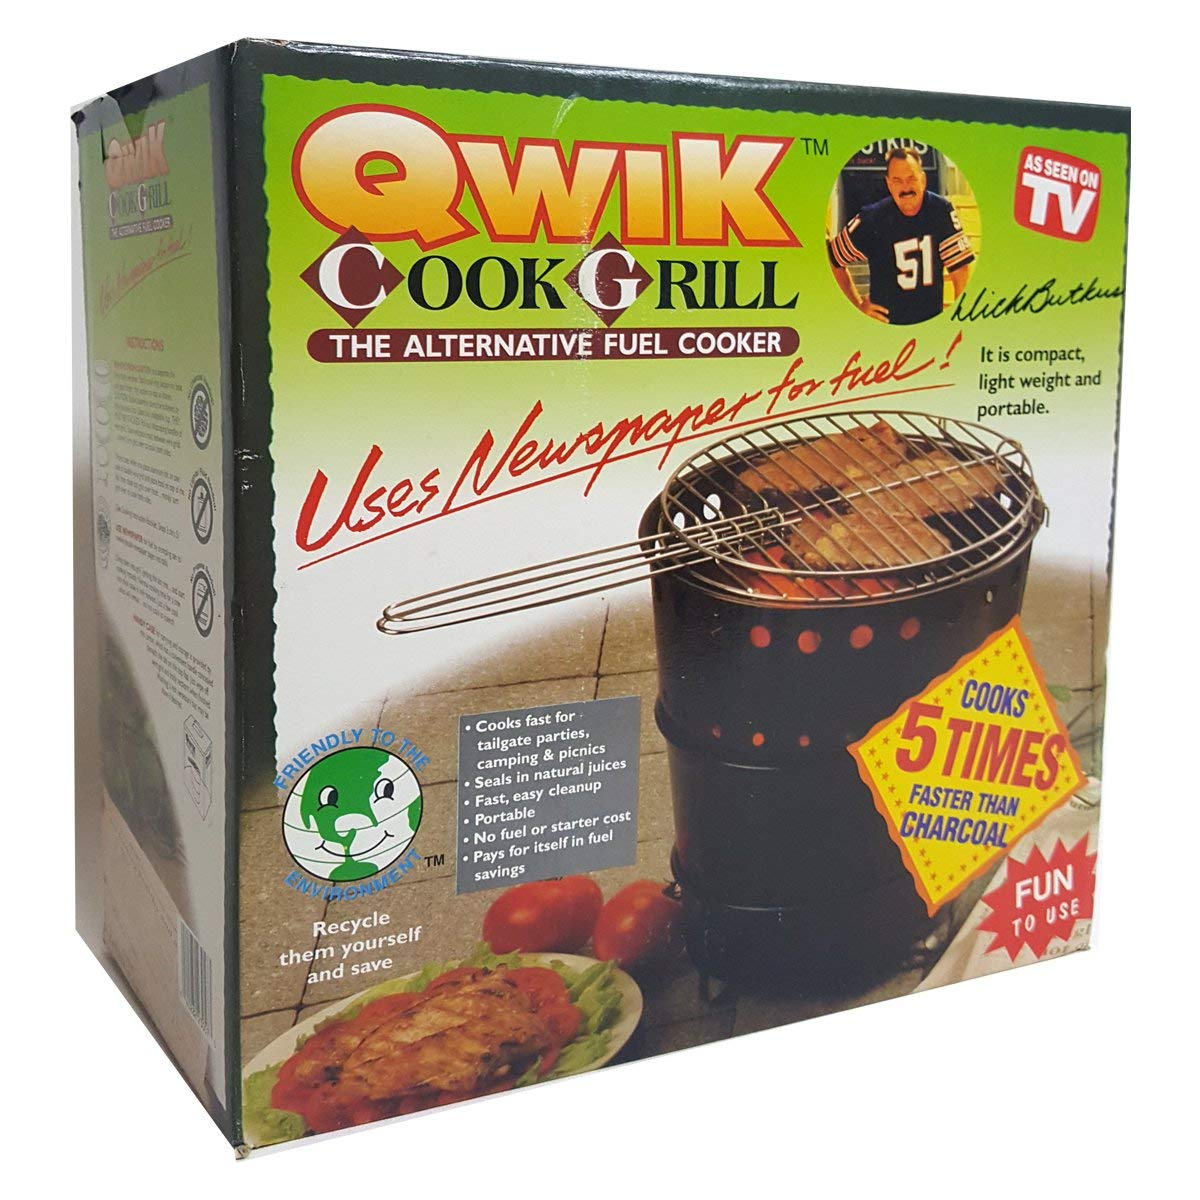 Qwik-Cook Grill